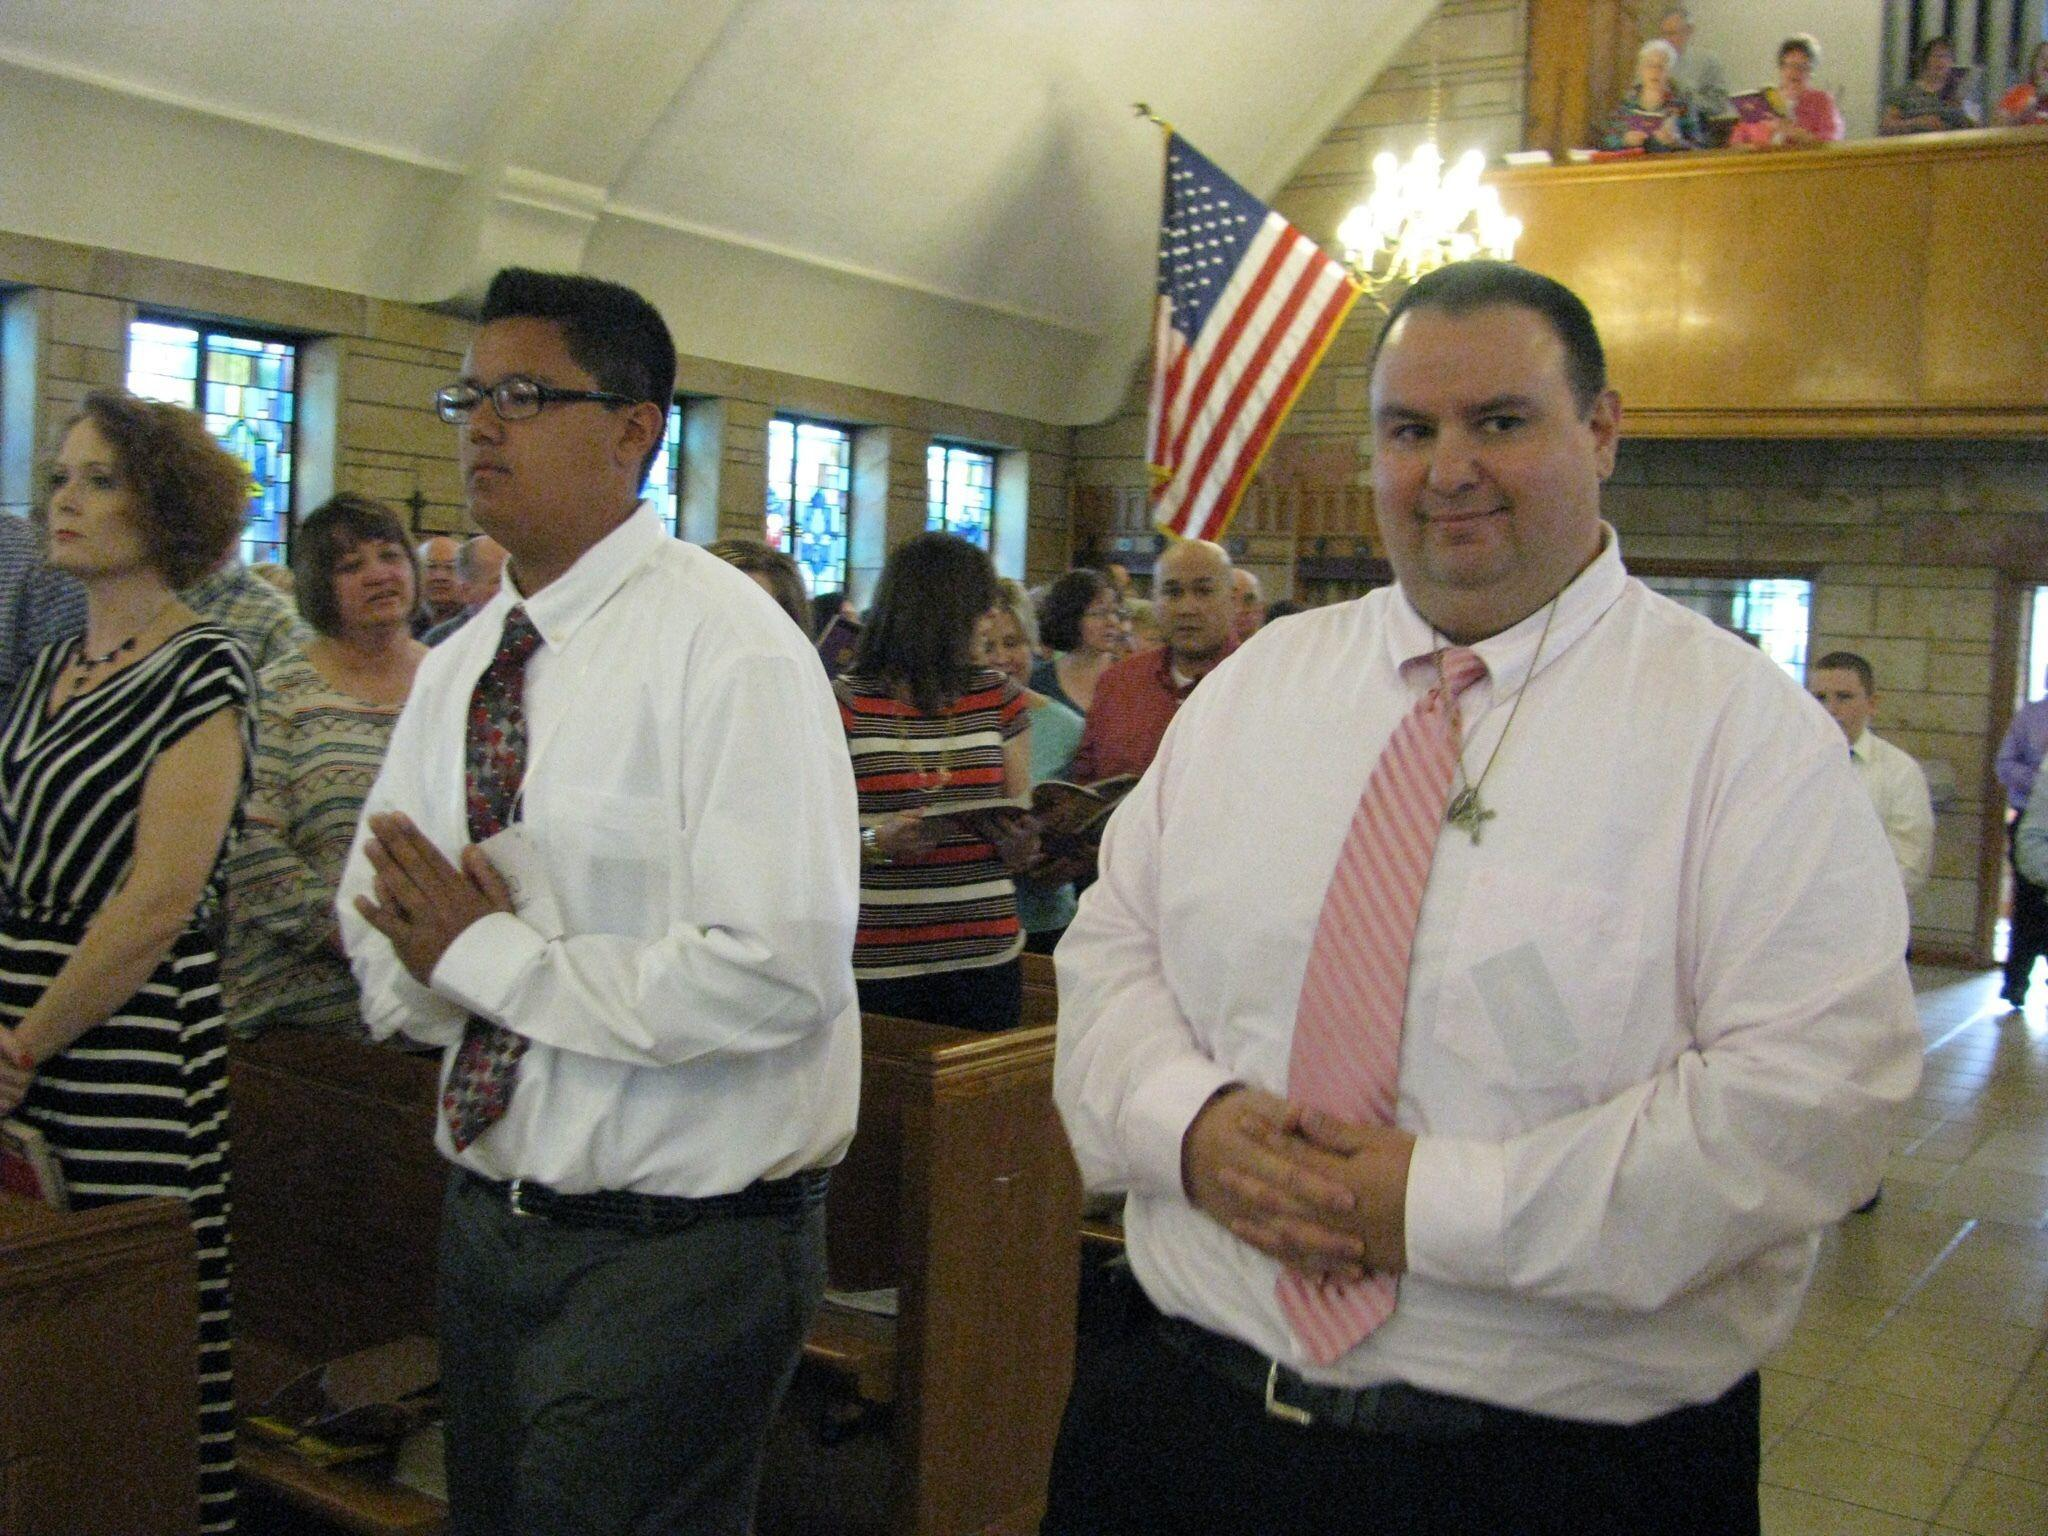 catholic singles in saint louis county Find churches catholic roman in st louis city county, mo on yellowbook get reviews and contact details for each business including videos, opening hours and more.